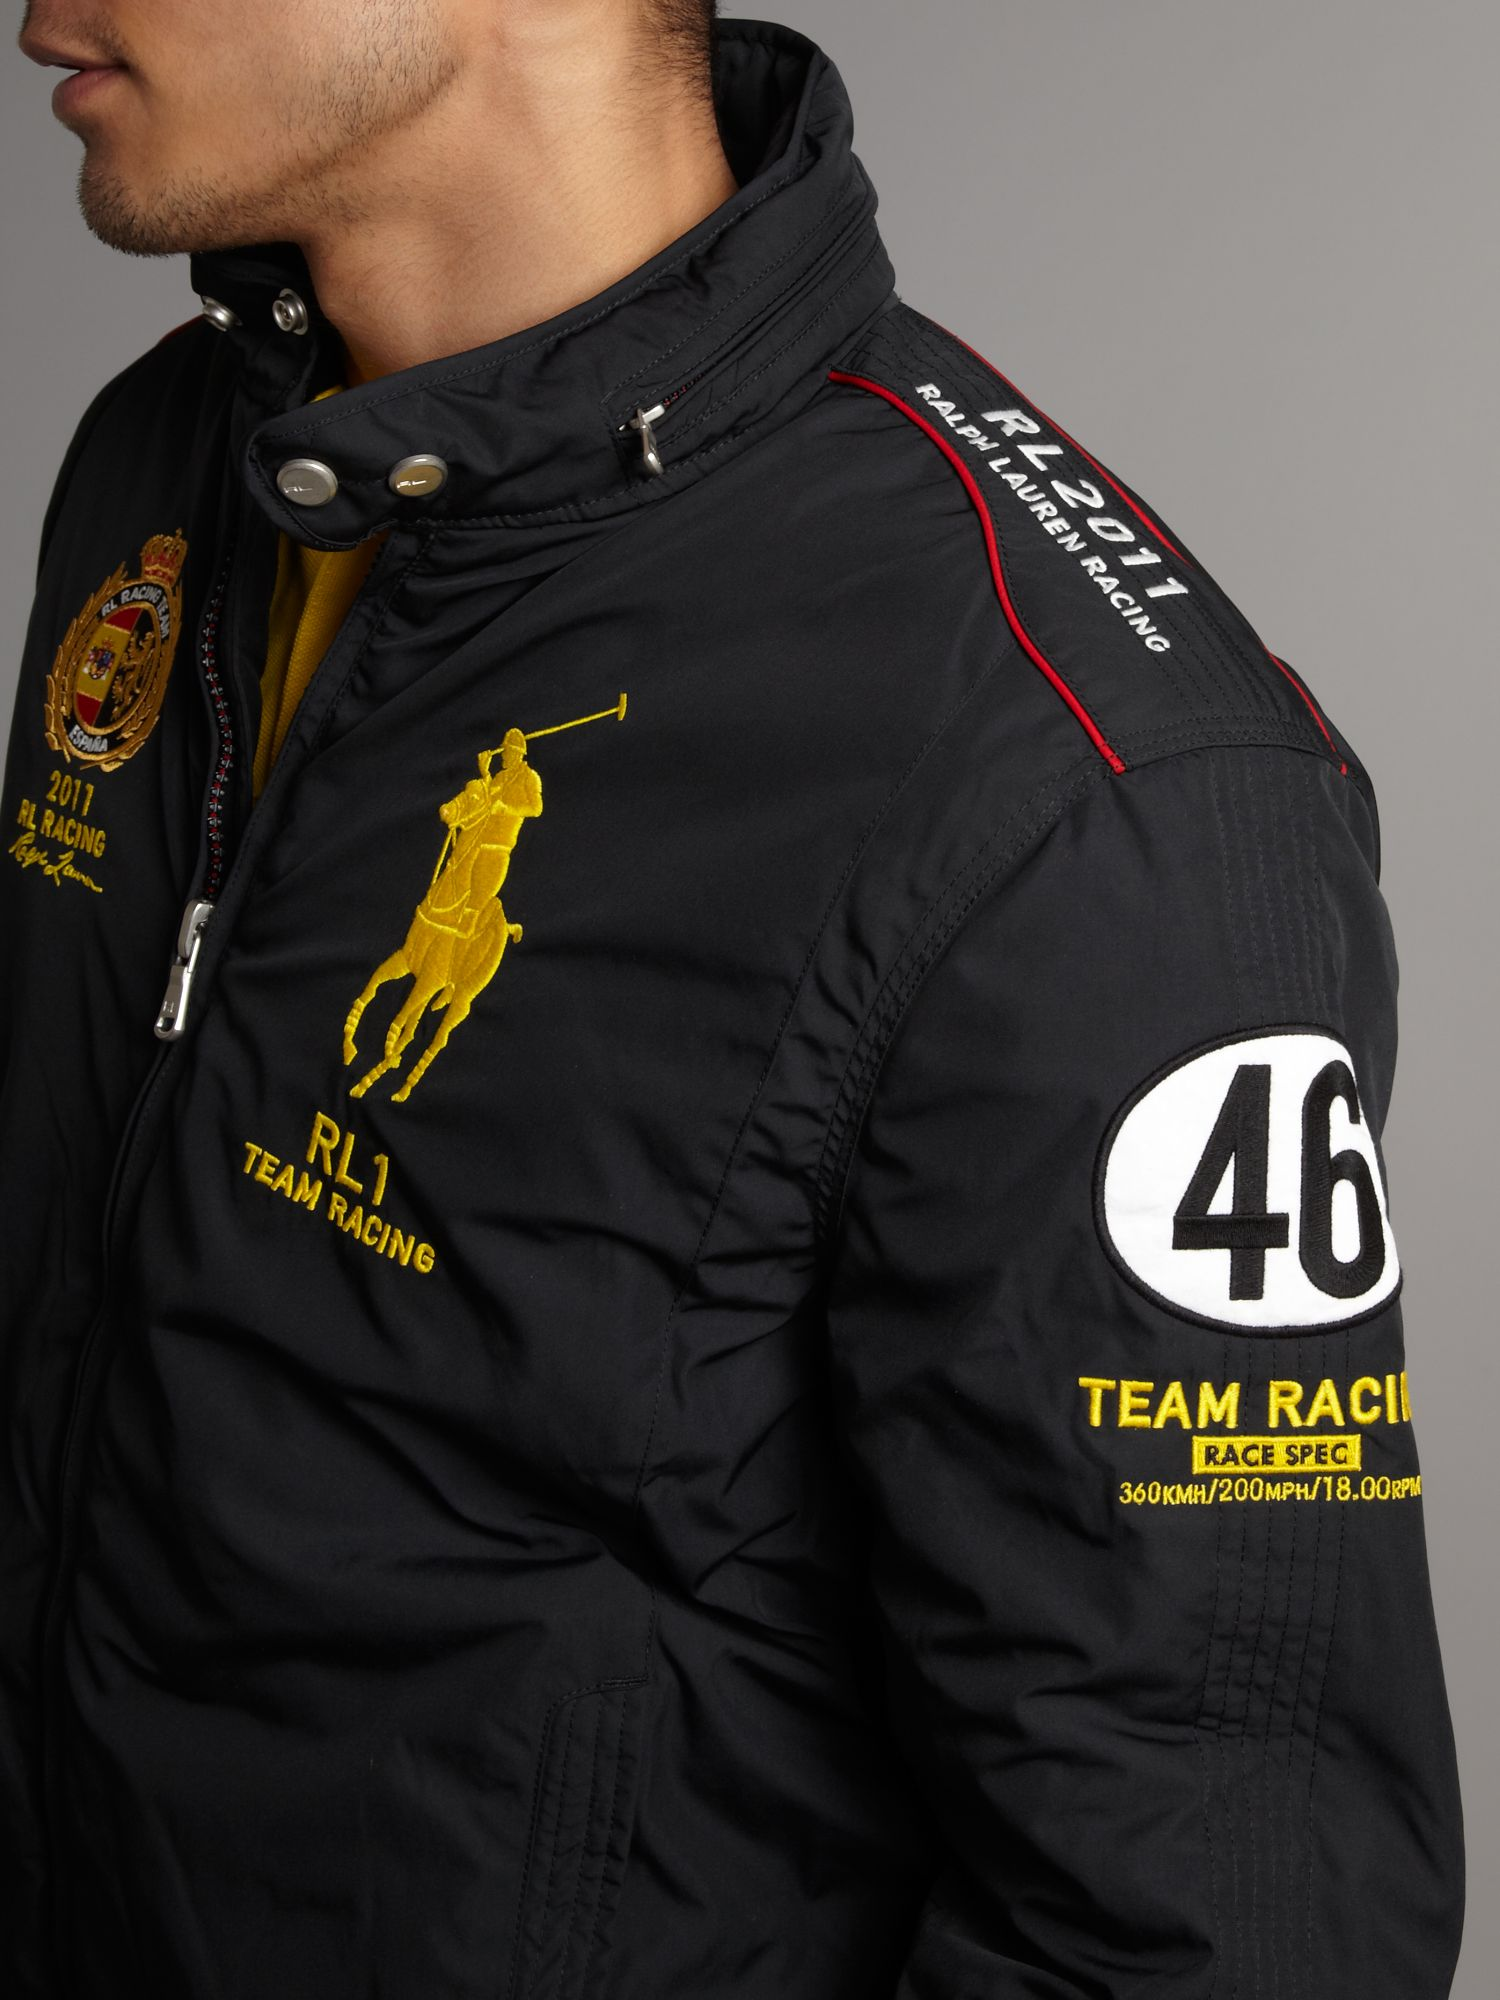 Polo Ralph Lauren Racing Espana Technical Jacket In Black For Men Lyst